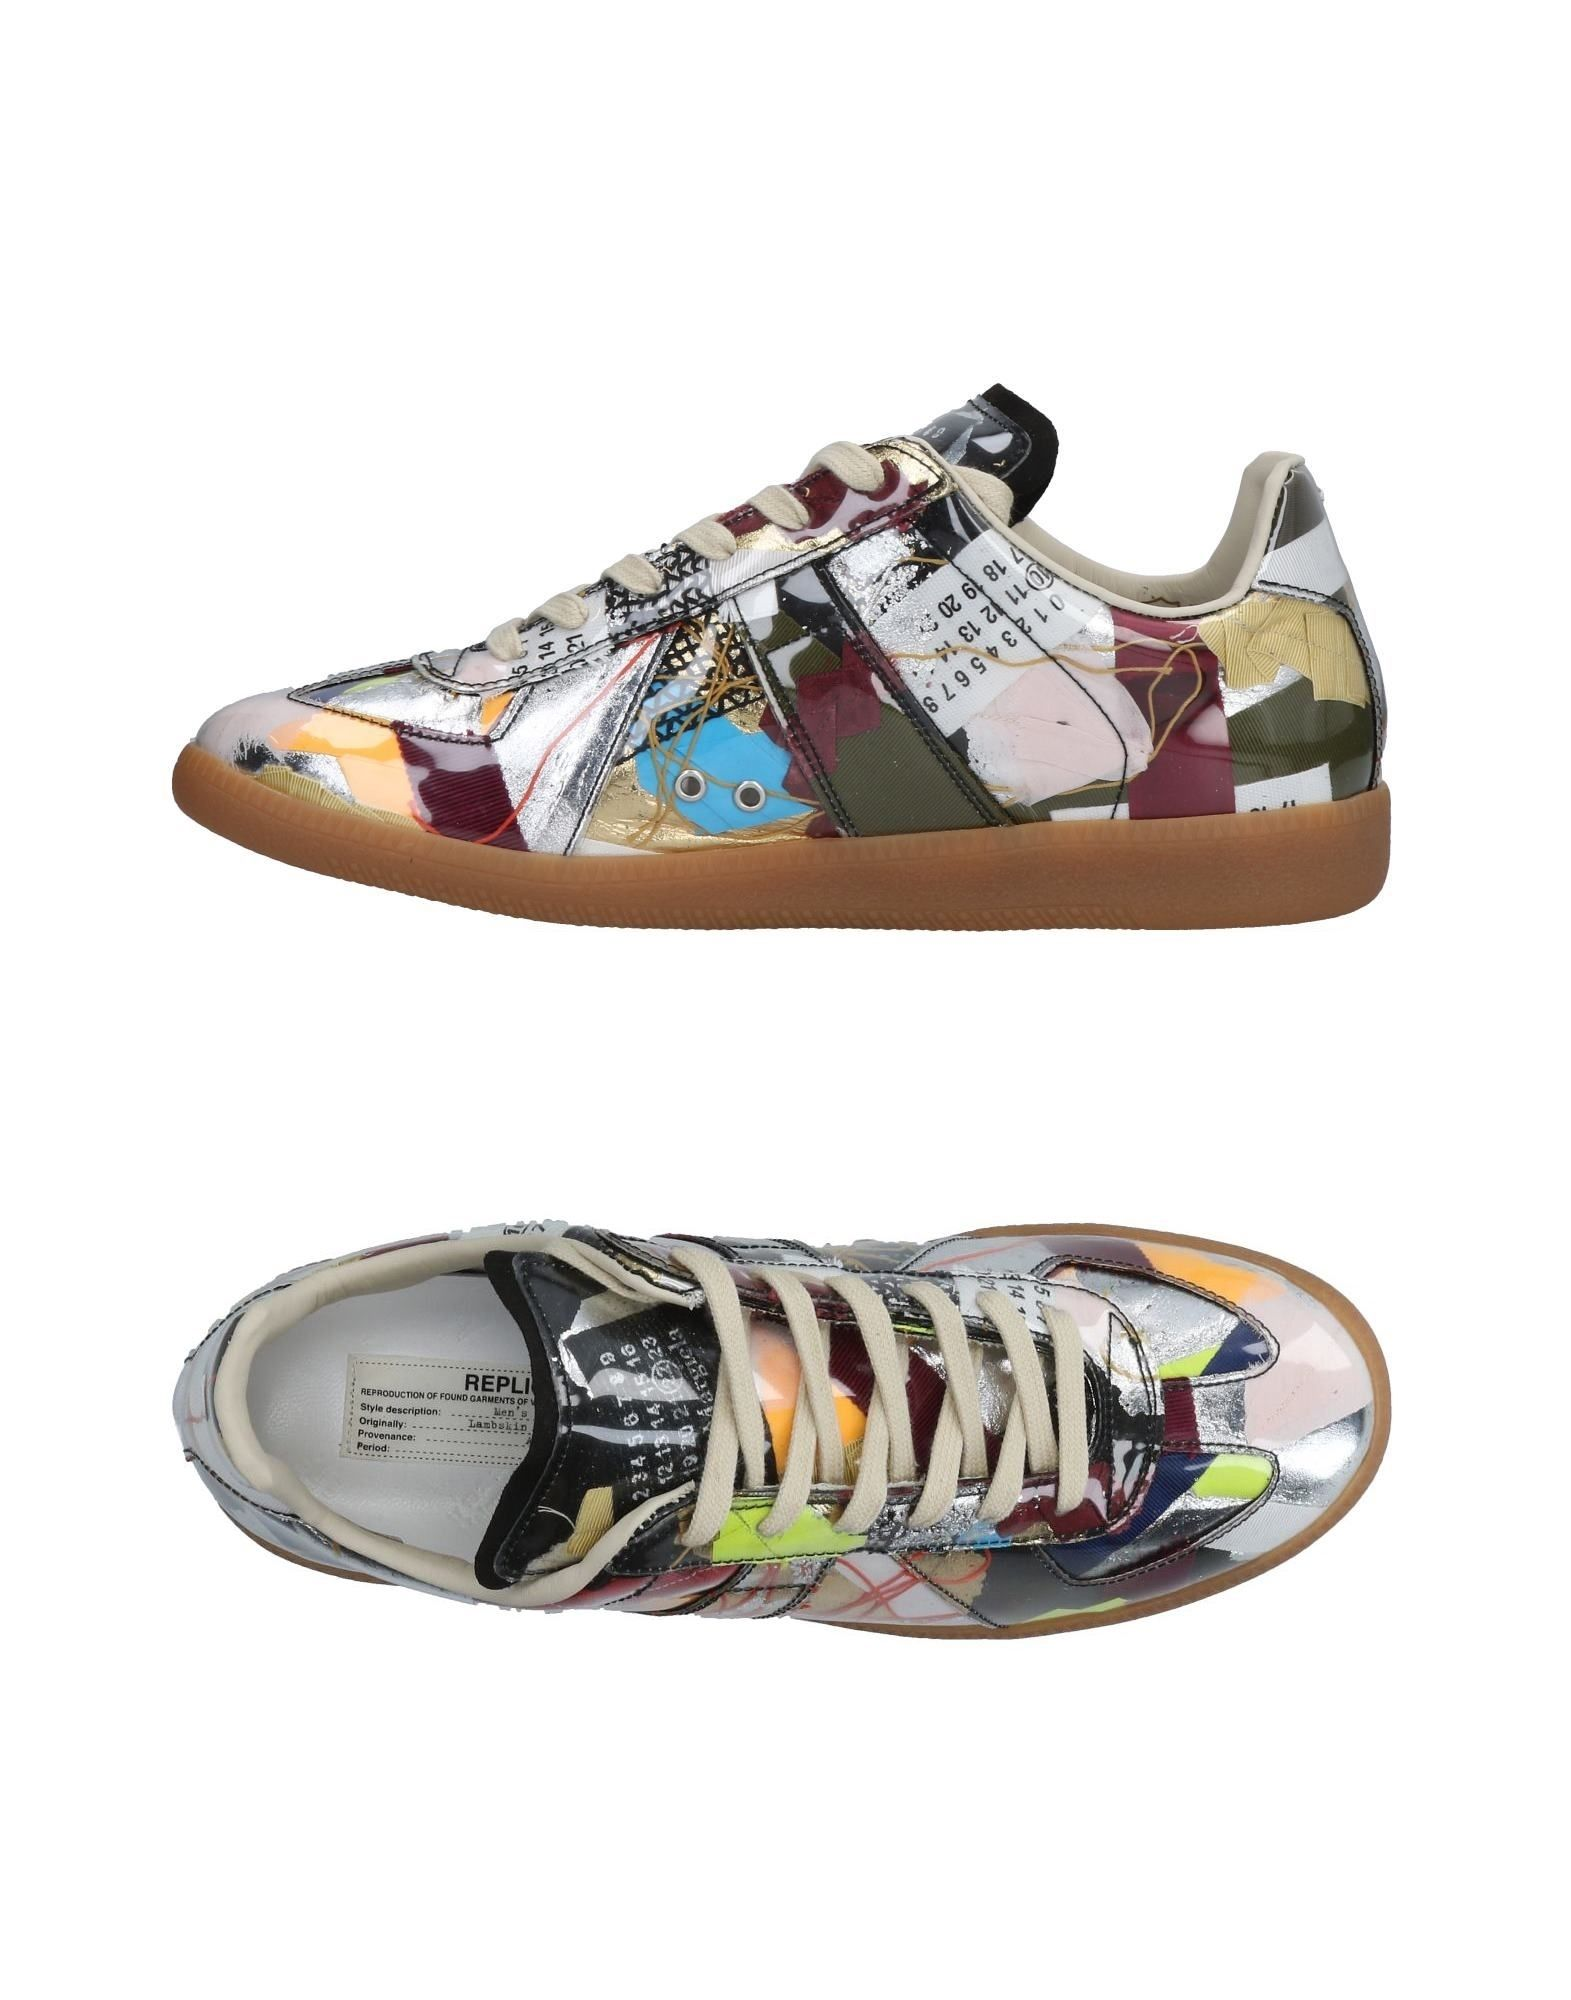 Maison Margiela Sneakers - Men Men Men Maison Margiela Sneakers online on  Canada - 11471900TO 76c6d7